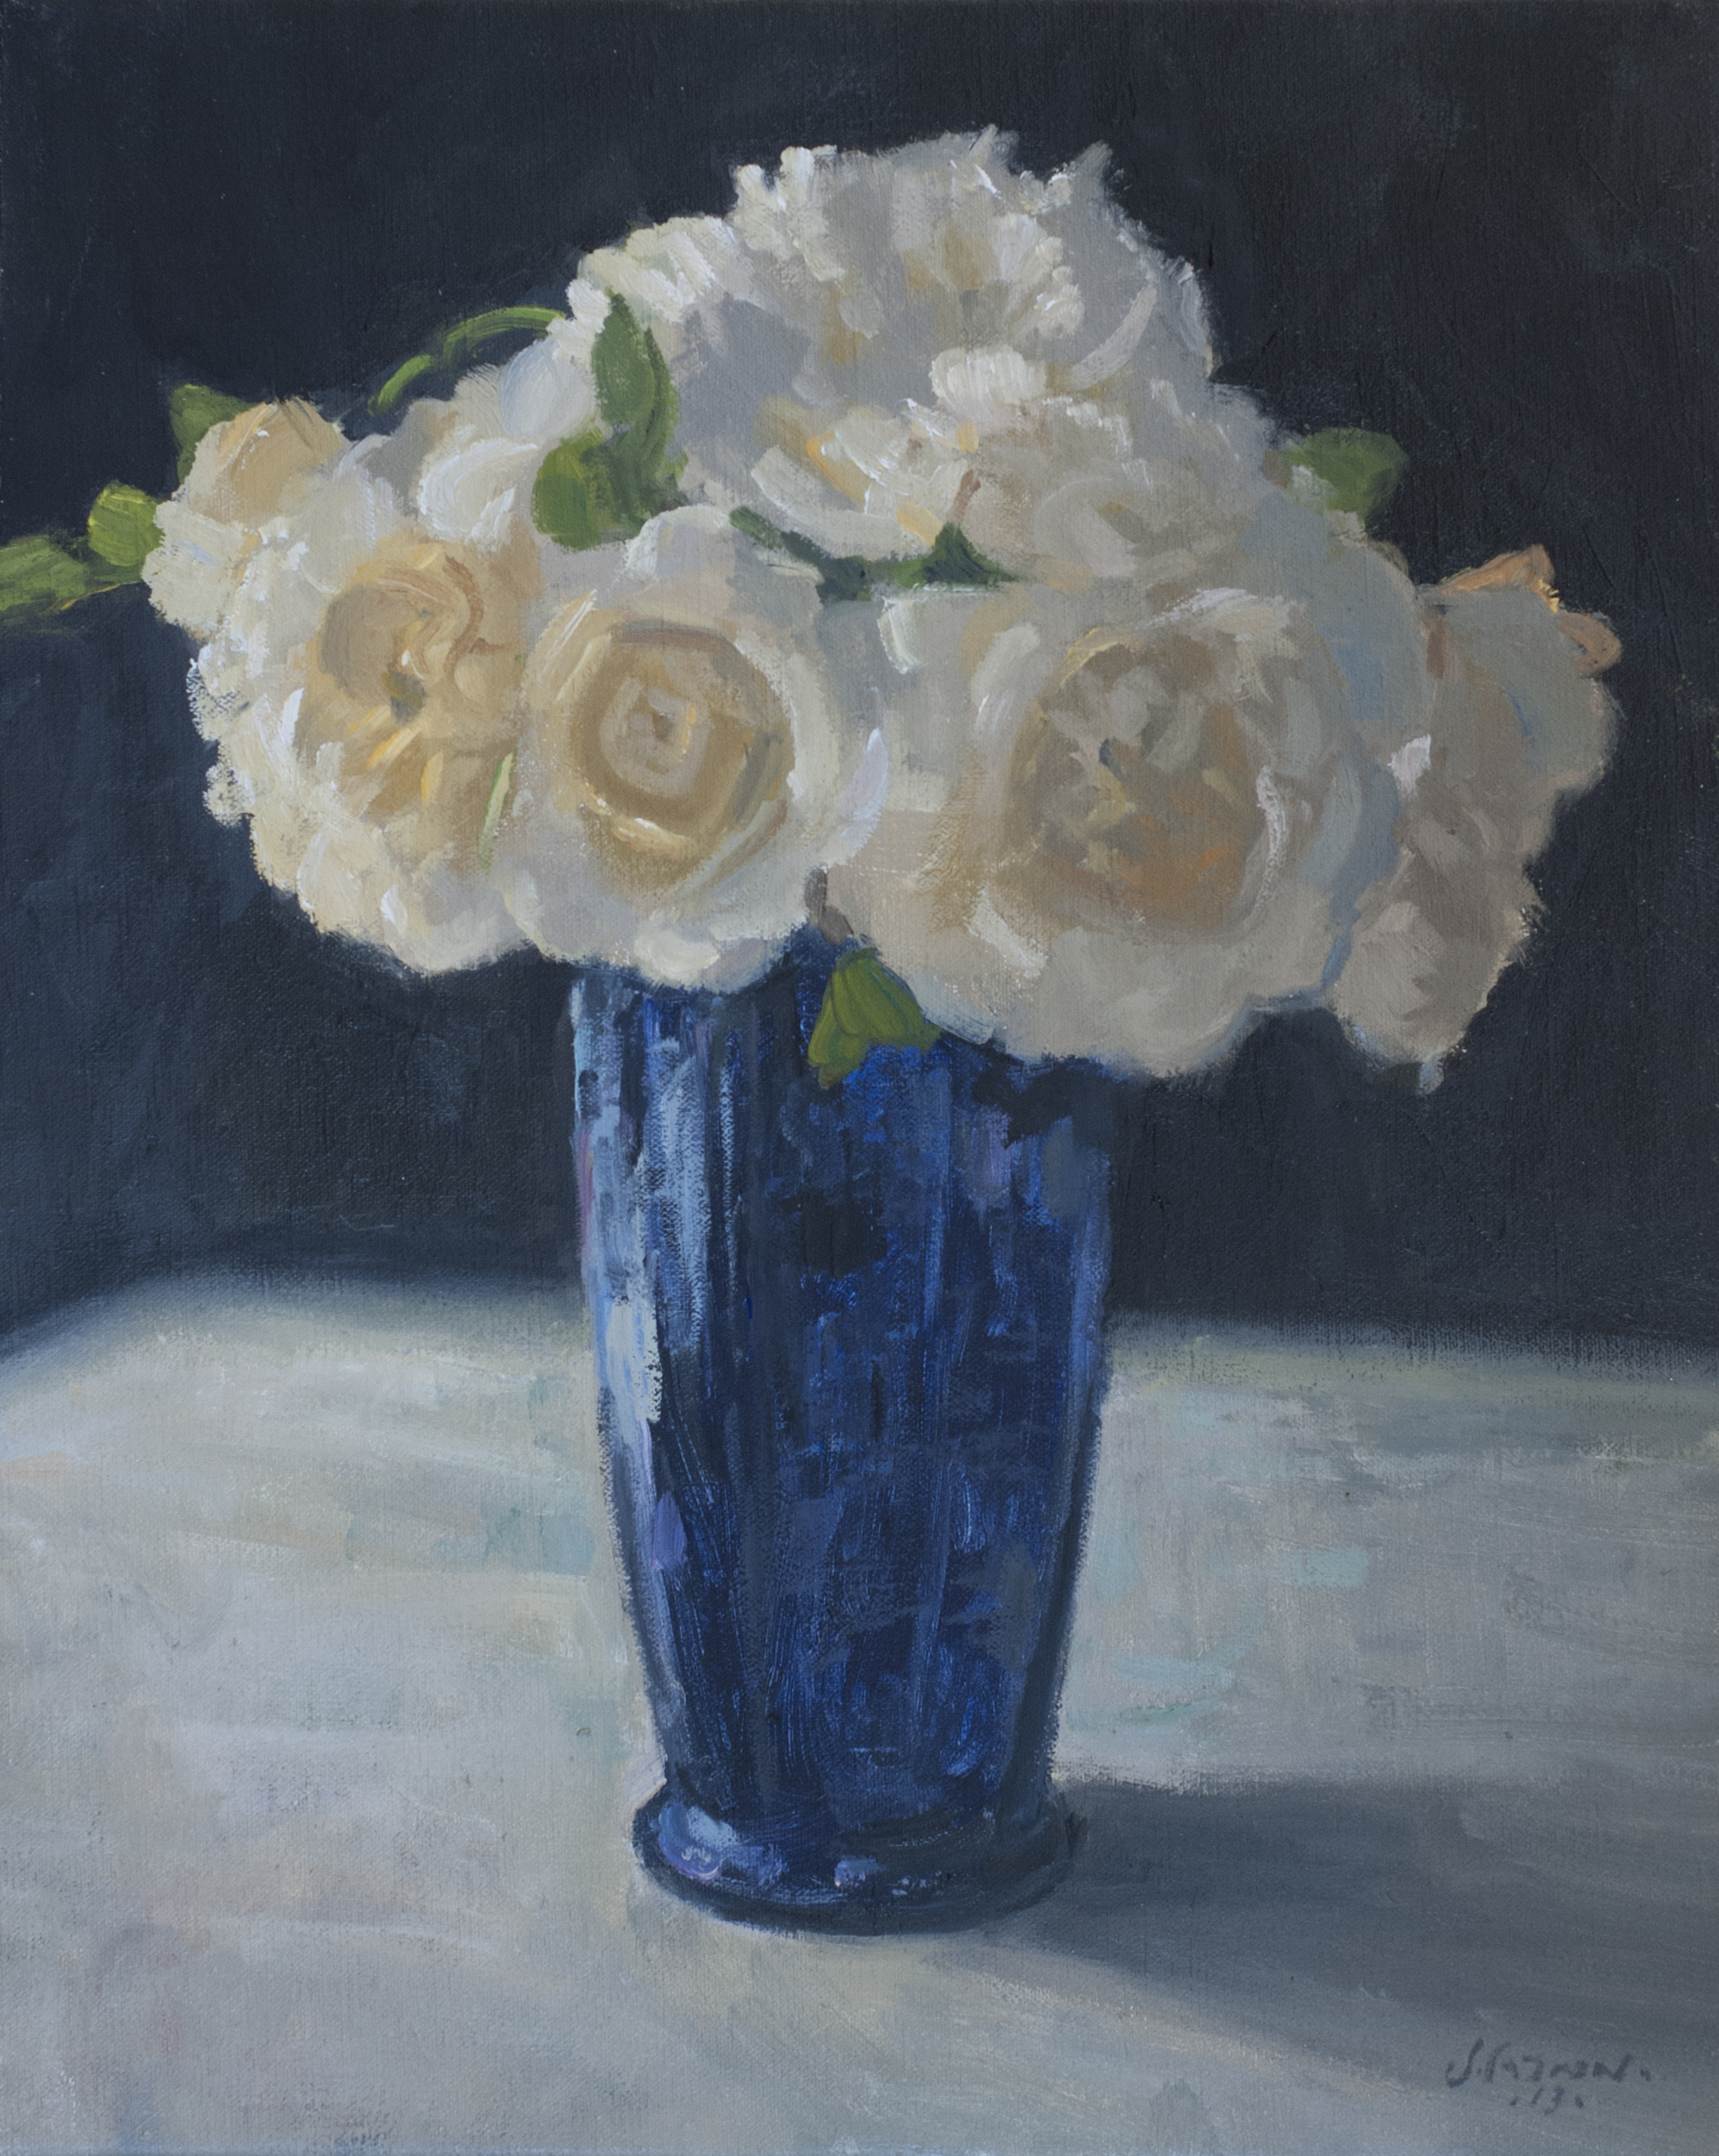 Blue Vase, Oil on linen, 16x12 inches.